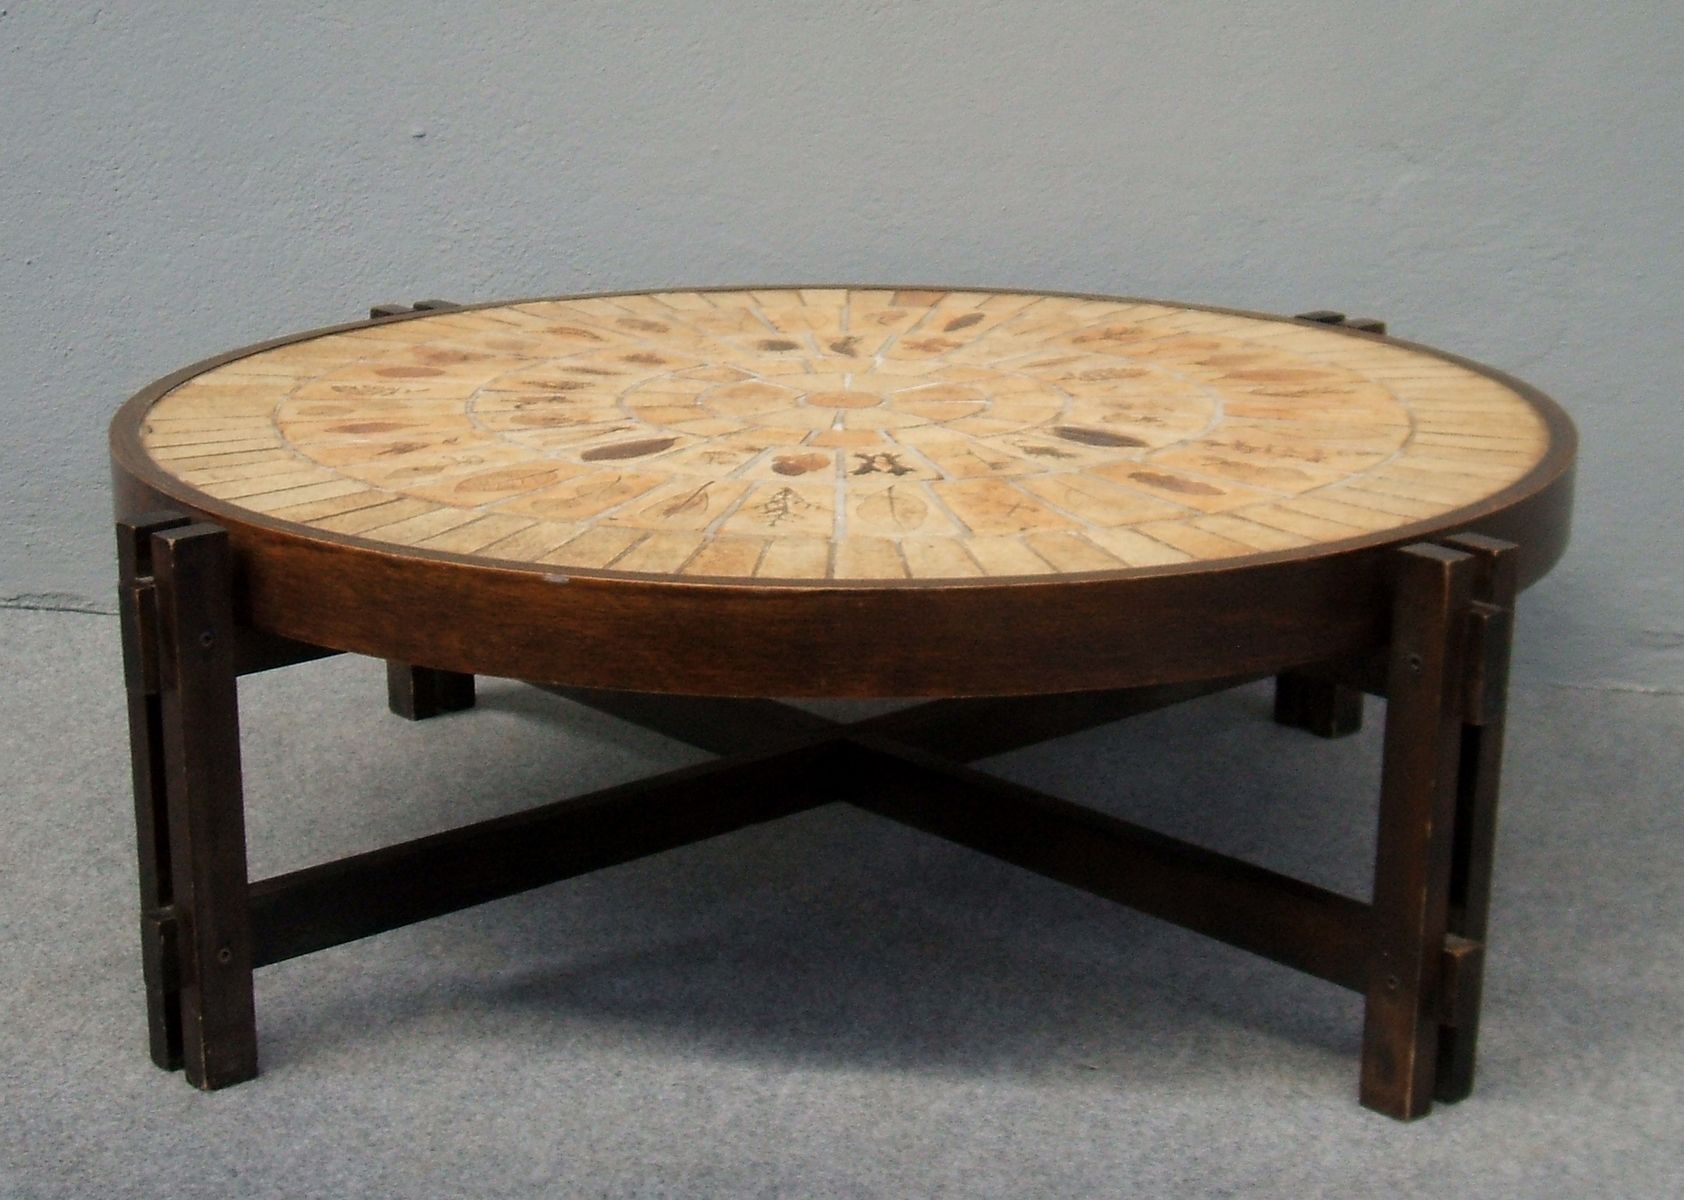 Round Coffee Table by Roger Capron 1970s for sale at Pamono